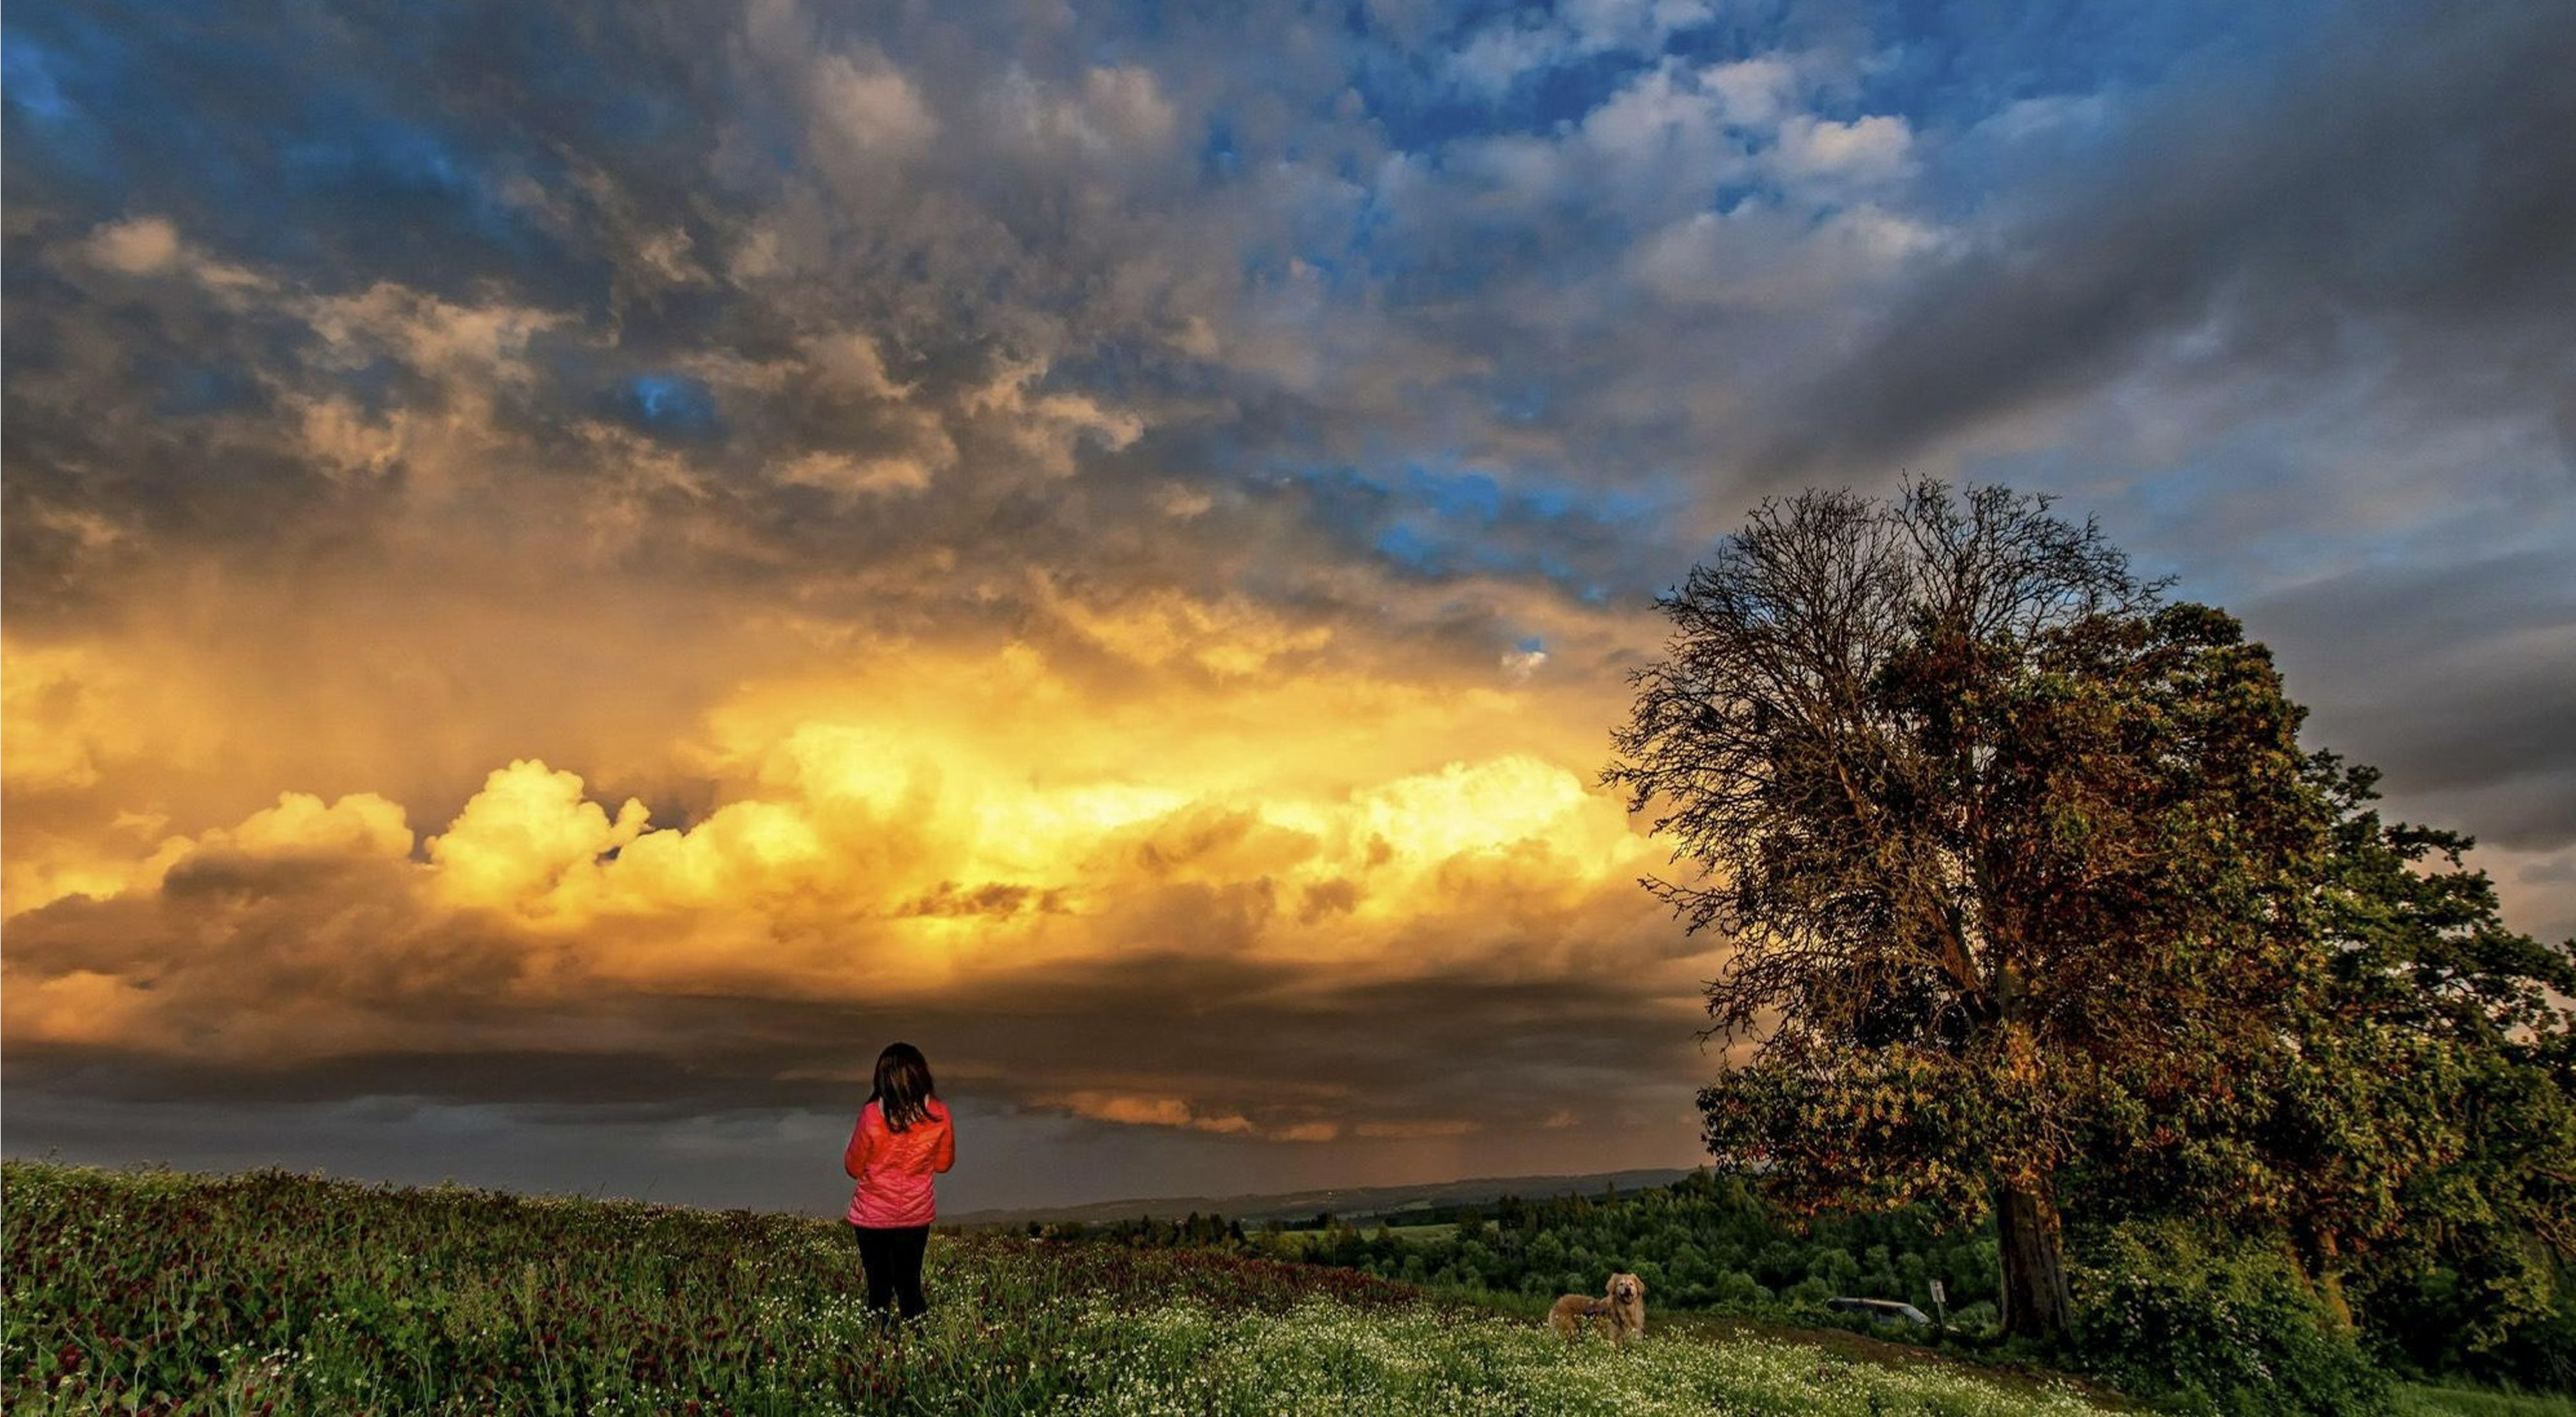 A woman stands on a hillside looking out at dramatically lit thunderclouds in the distance.